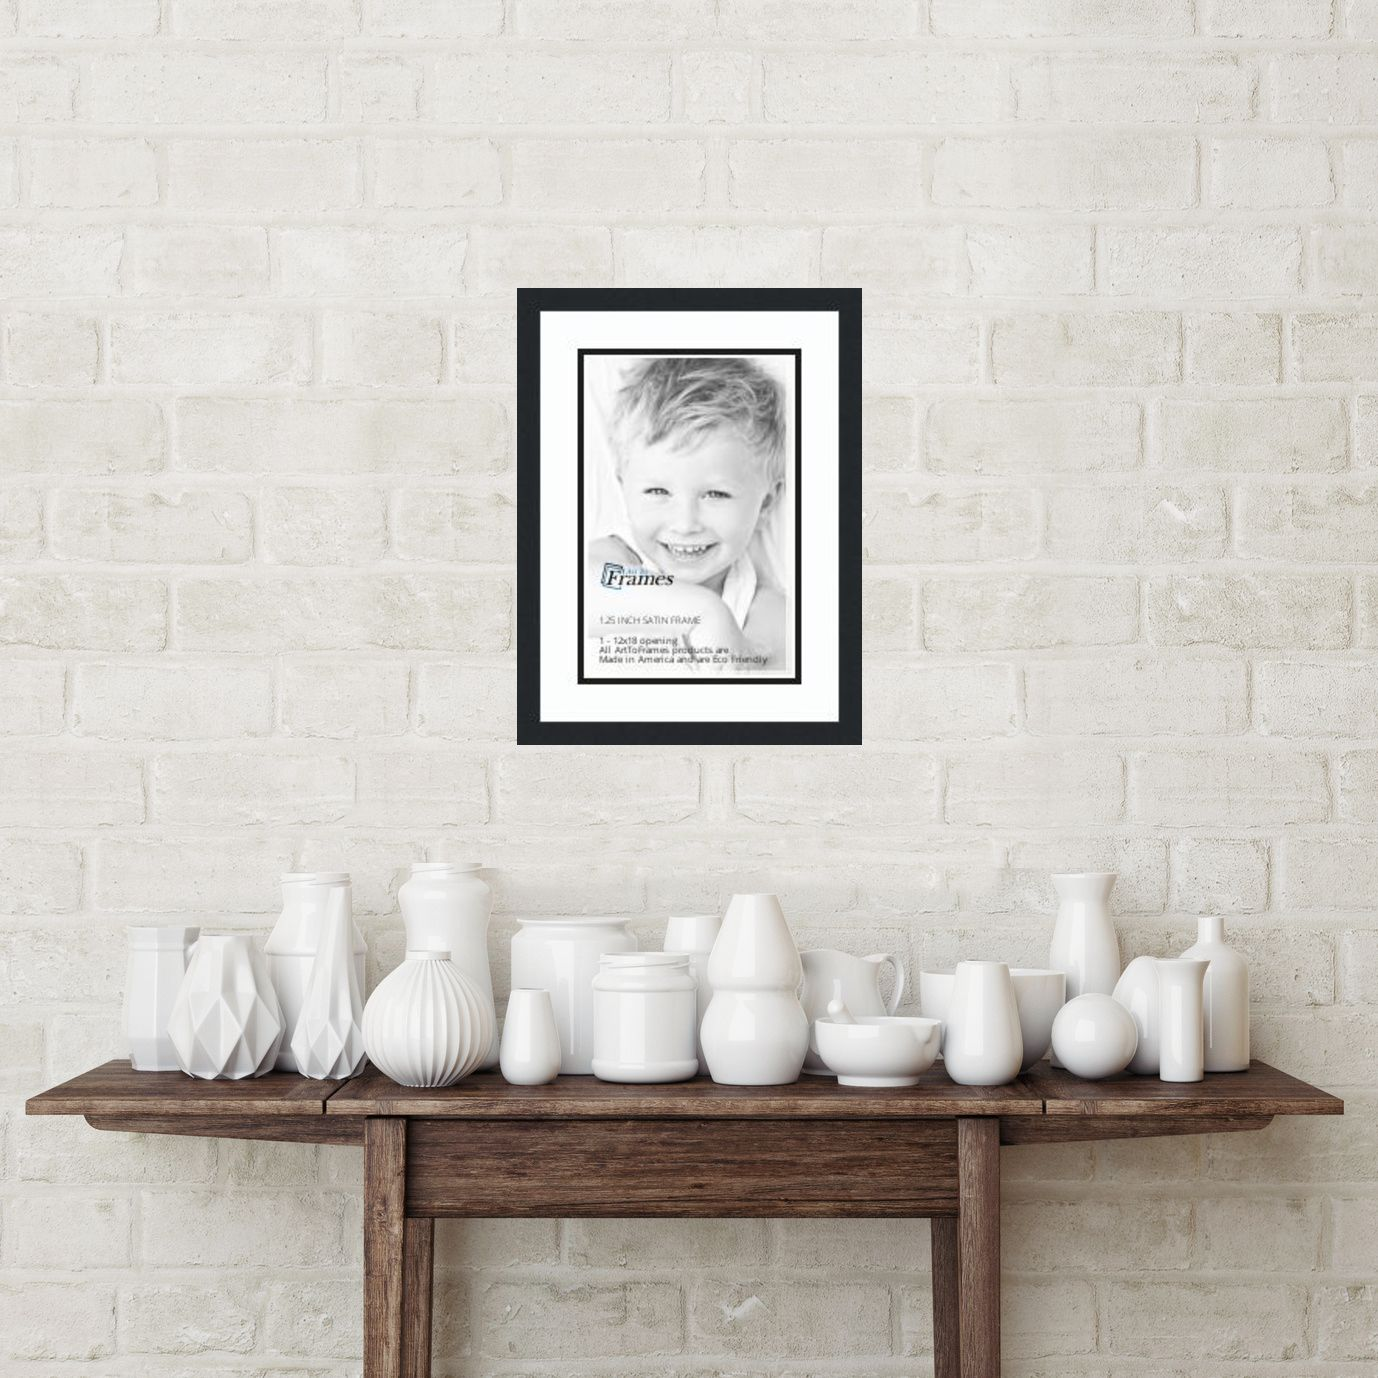 Pin by Libby Burgwin on Gallery Wall | Pinterest | Custom frames ...